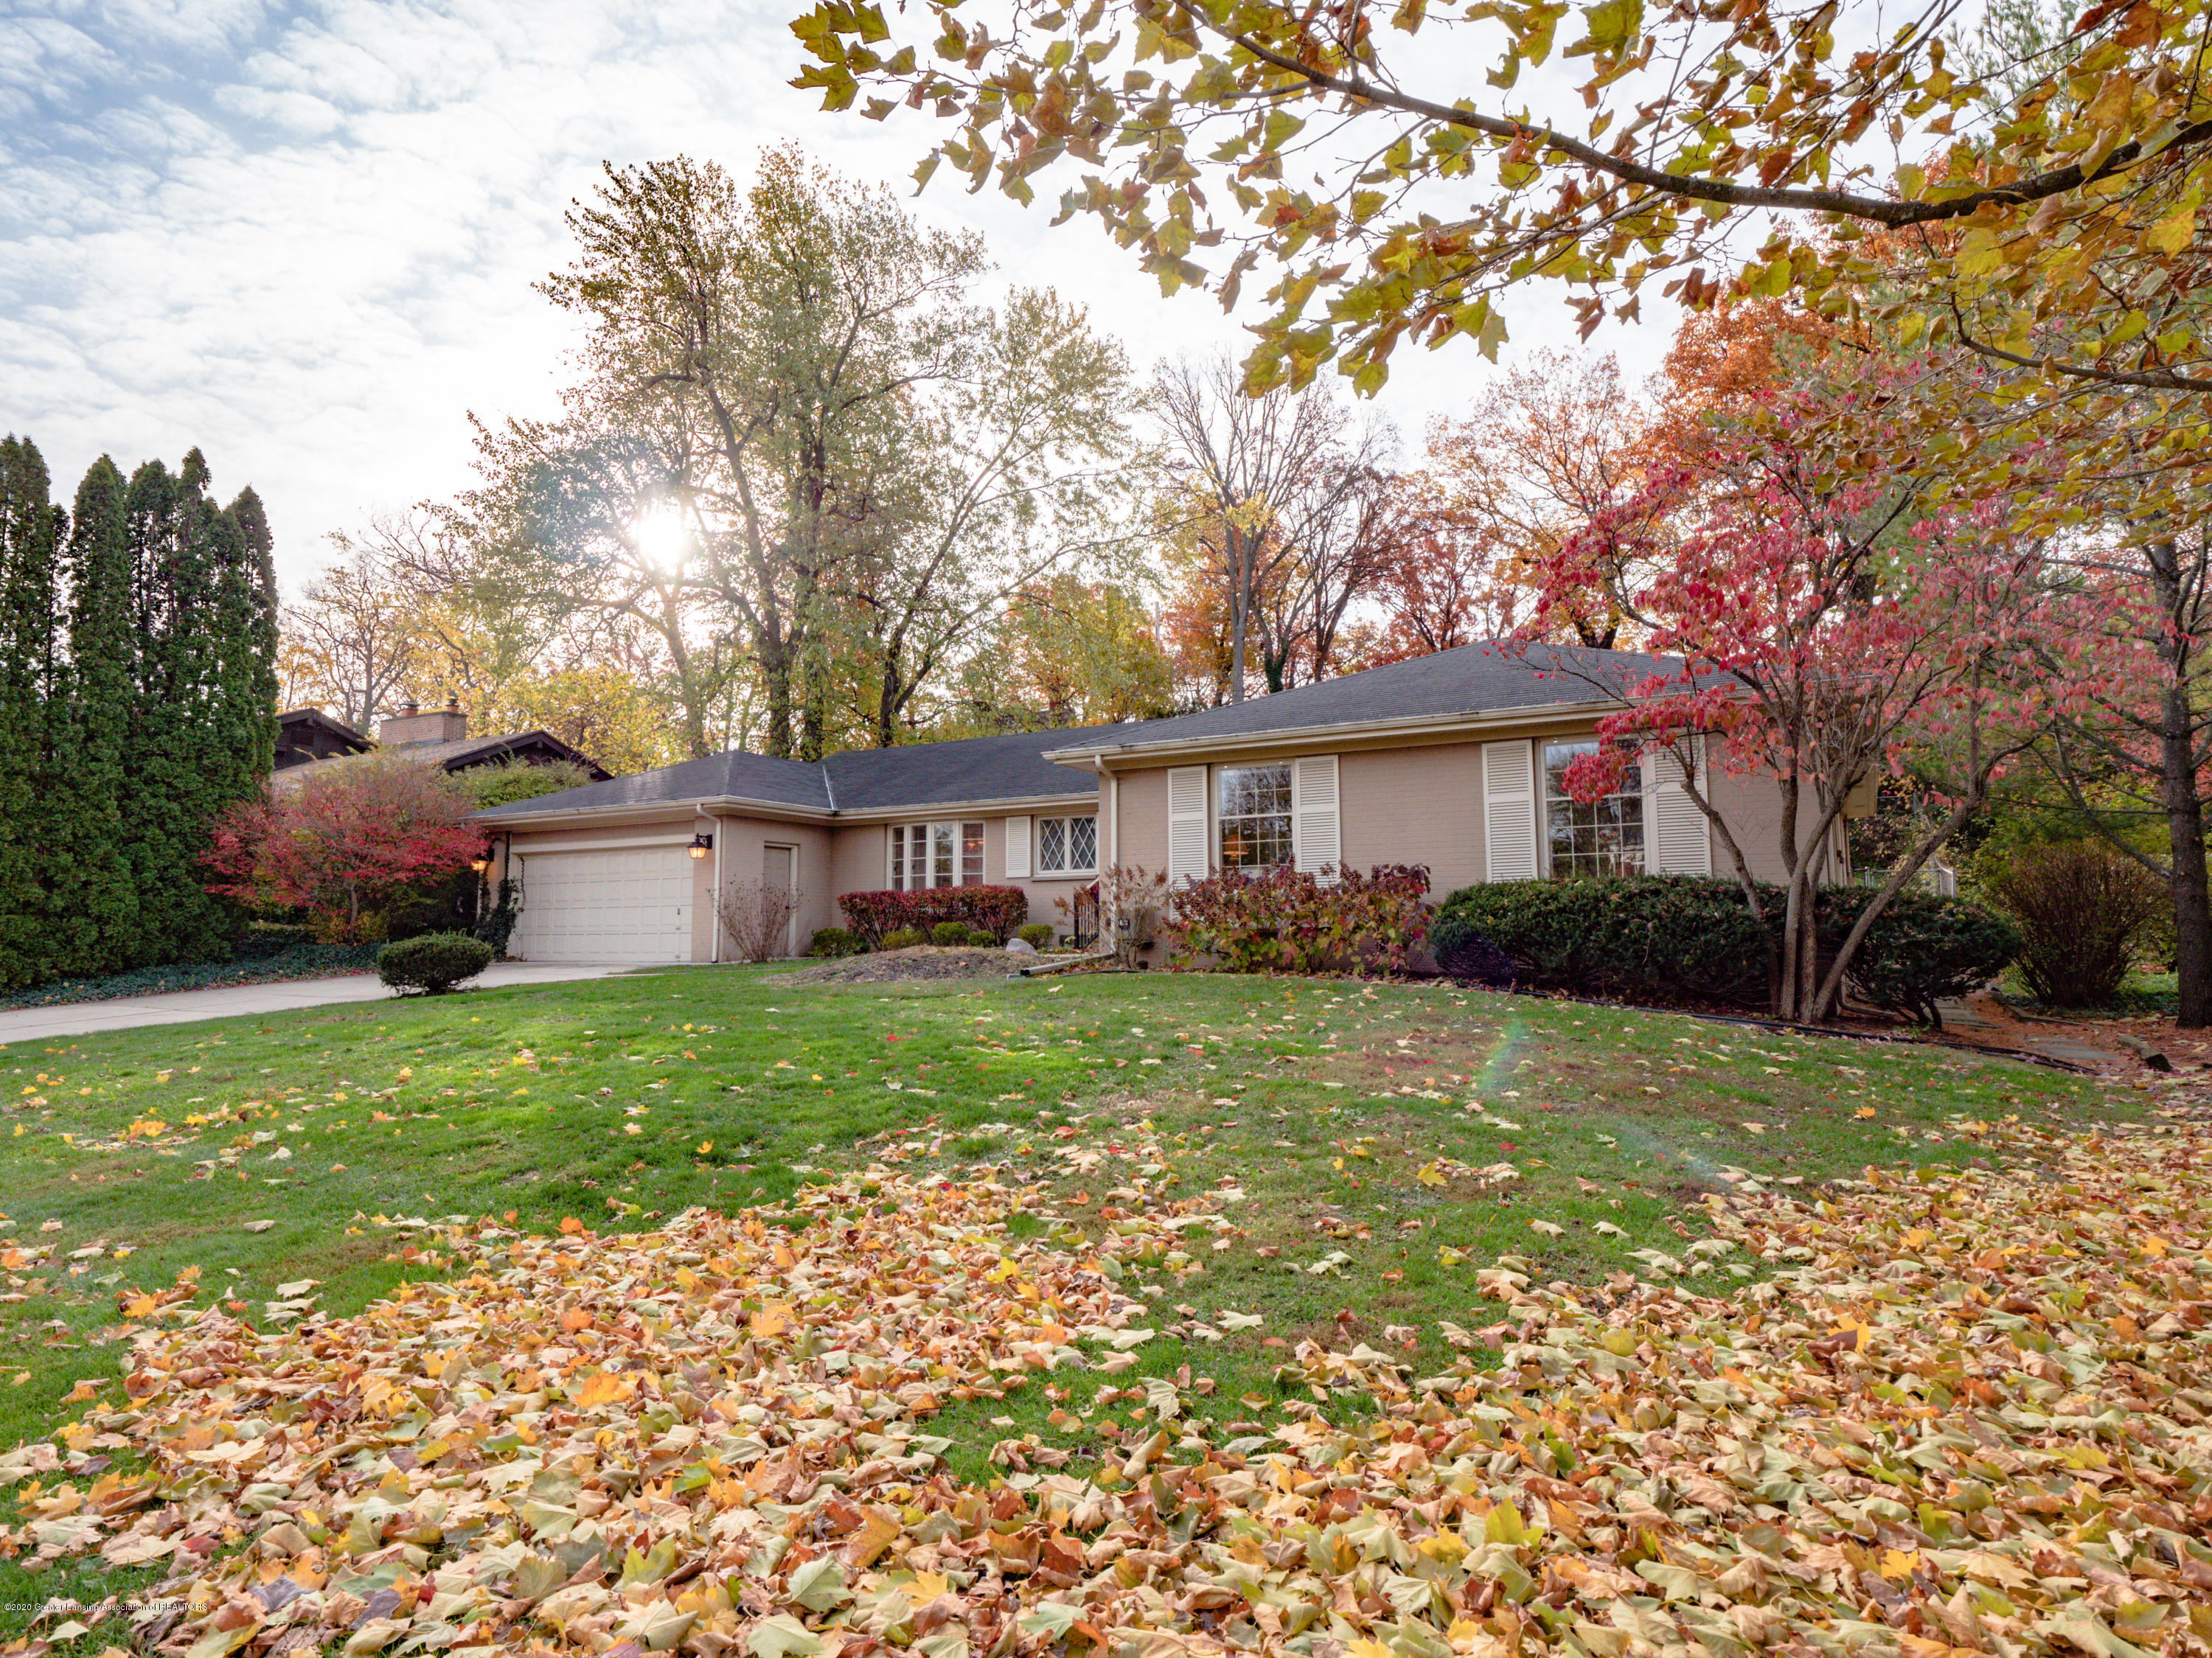 553 Southlawn Ave - 553_Southlawn_Ave-2 - 39